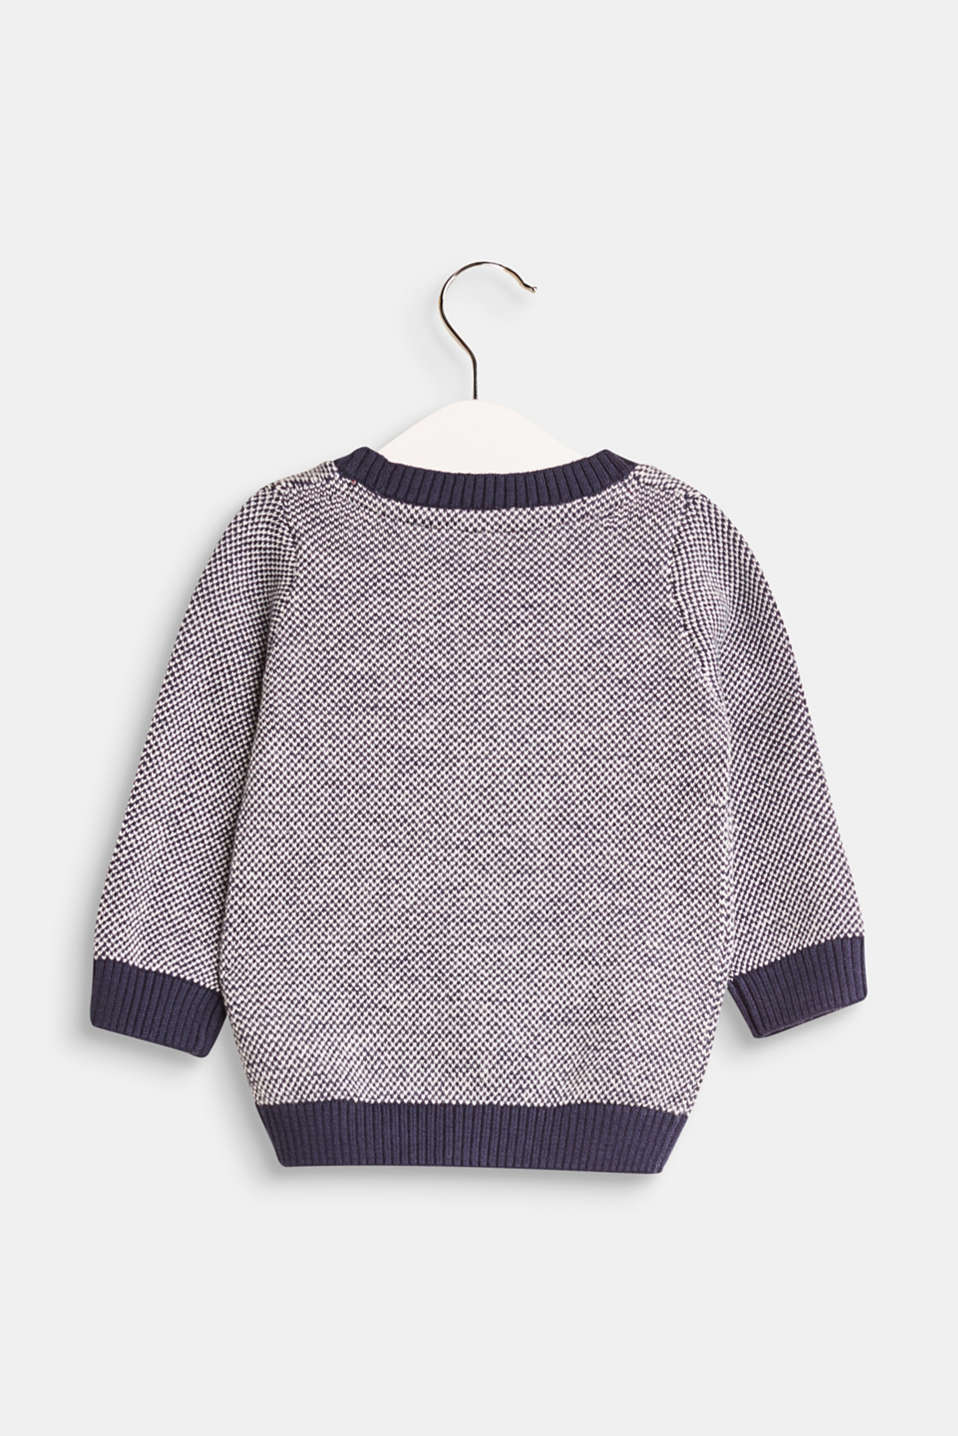 Cardigan in two-tone knit fabric, 100% cotton